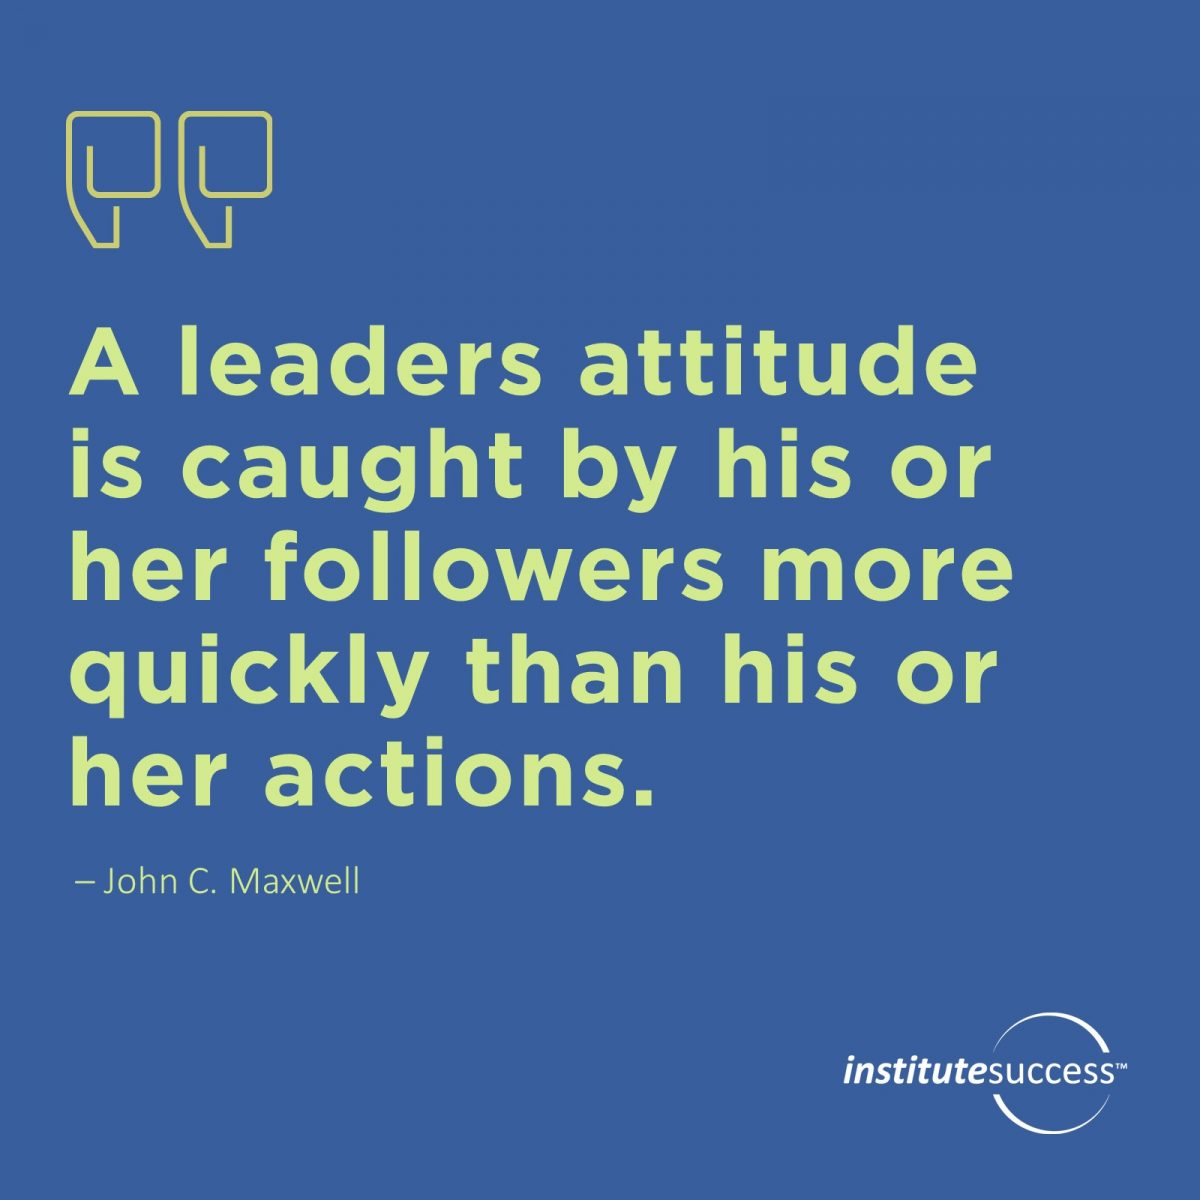 A leaders attitude is caught by his or her followers more quickly than his or her actions.	John C. Maxwell